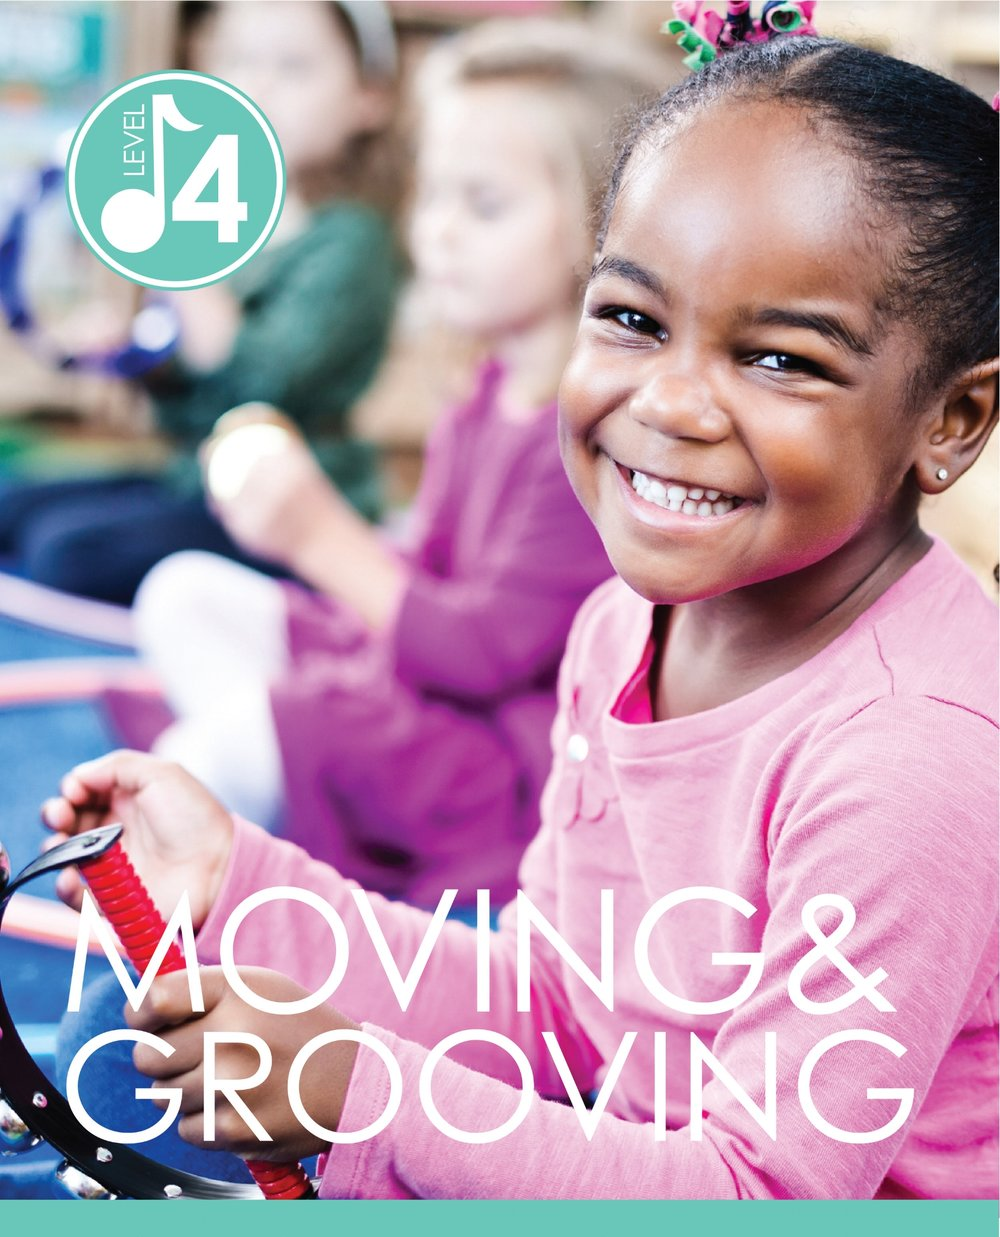 Ages 3yr - 4yr - Exciting experiences await as your child learns musical symbols, terms and concepts, explores more complex instruments, and builds skills that enhance school readiness.